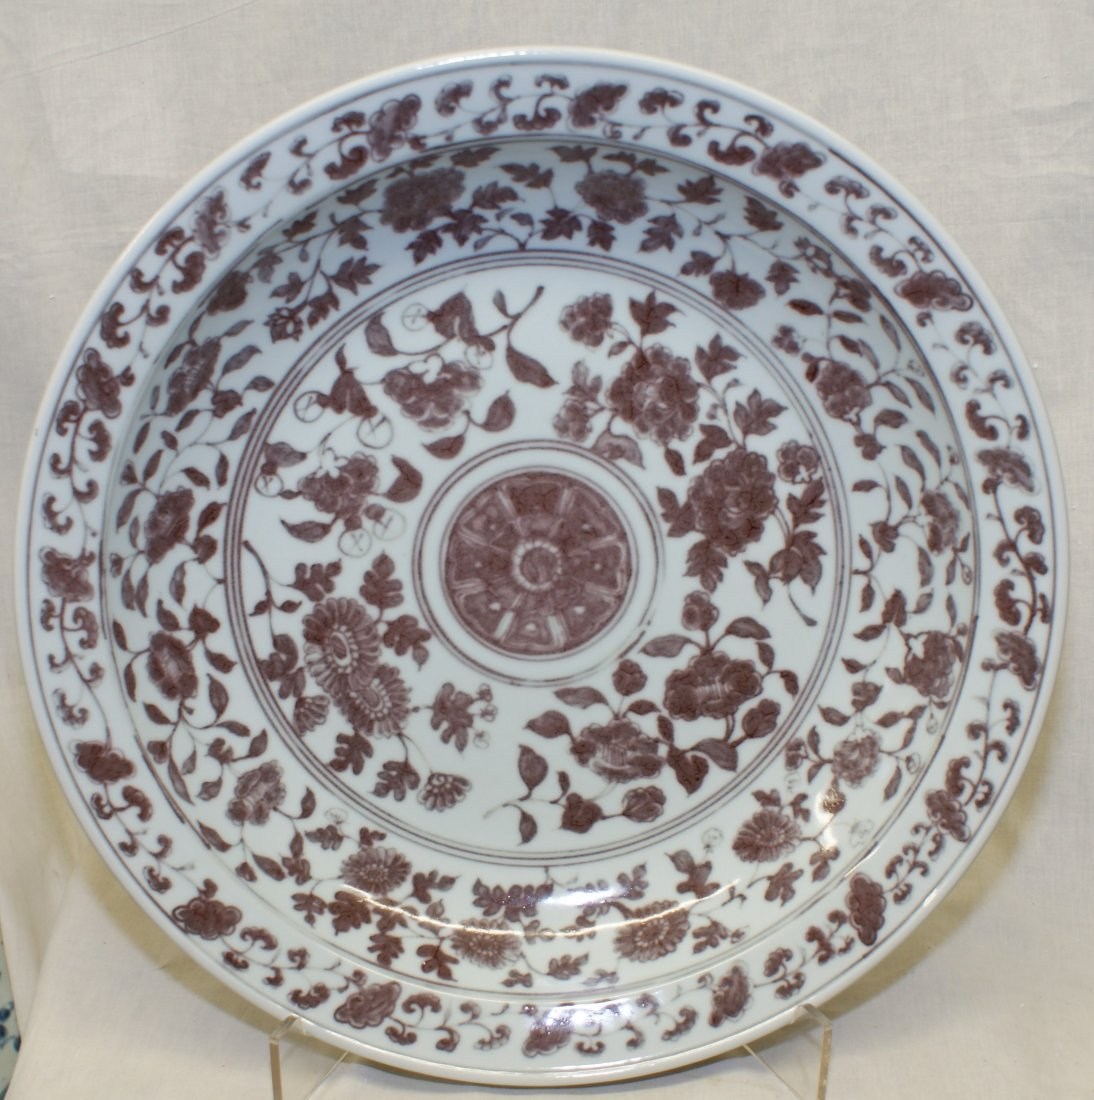 Underglaze red plate.  Early Ming Period.